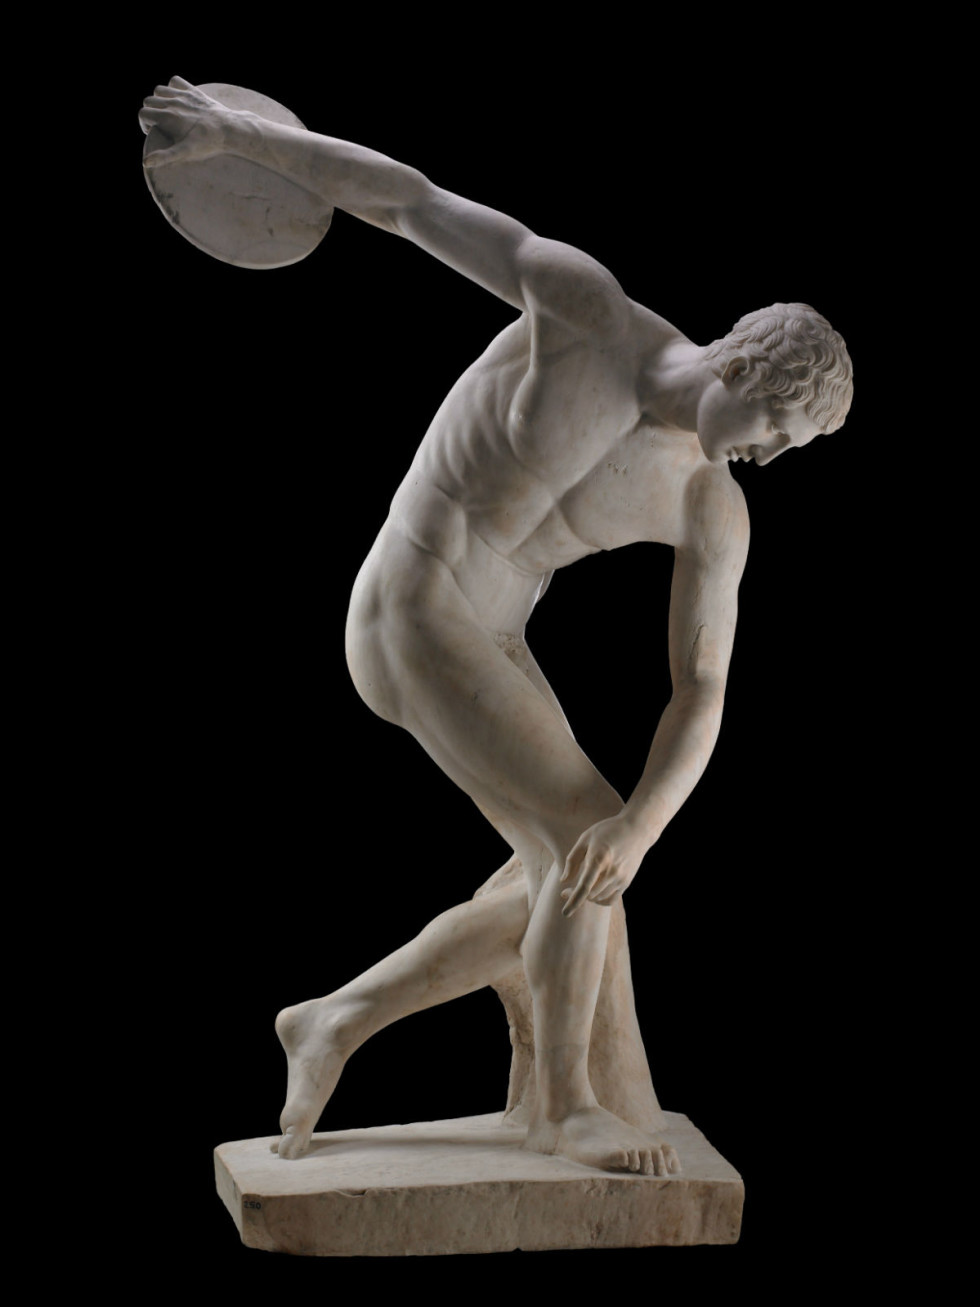 Dallas Museum of Art presents The Body Beautiful in Ancient Greece